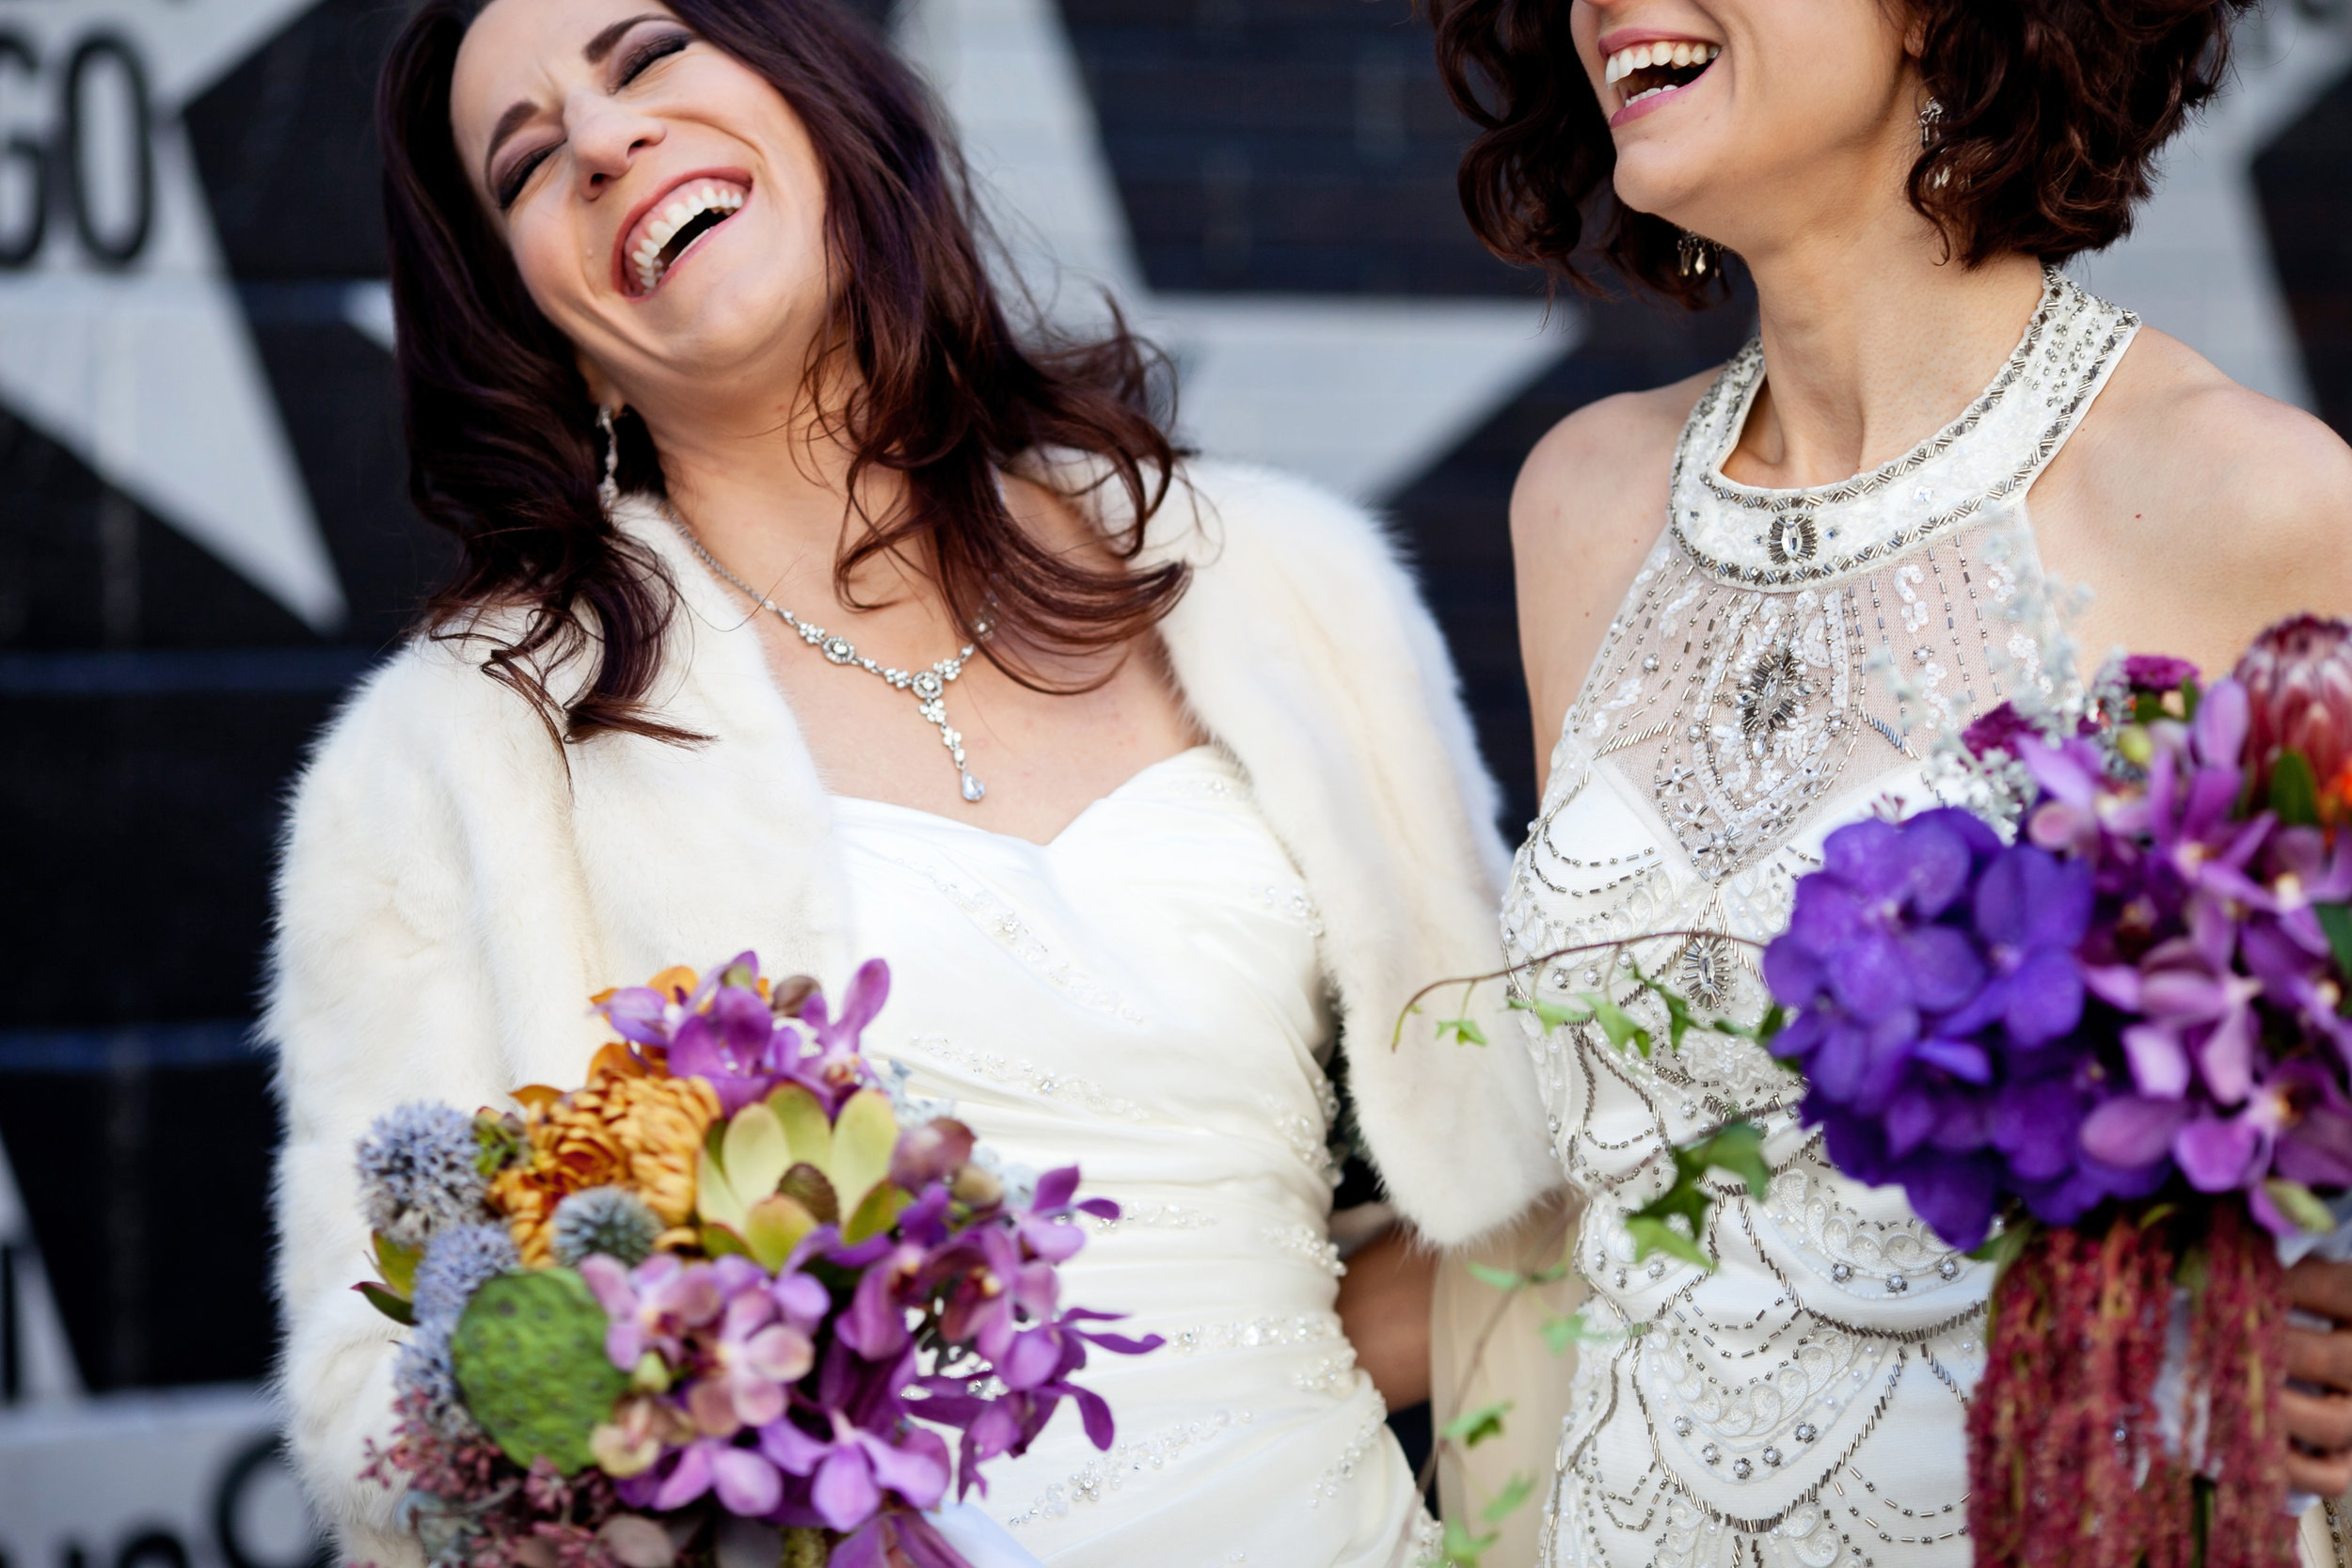 18  first look two brides two brides first look colorful bouquets both brides wear wedding dresses candid first look moment Life Design Events.jpg